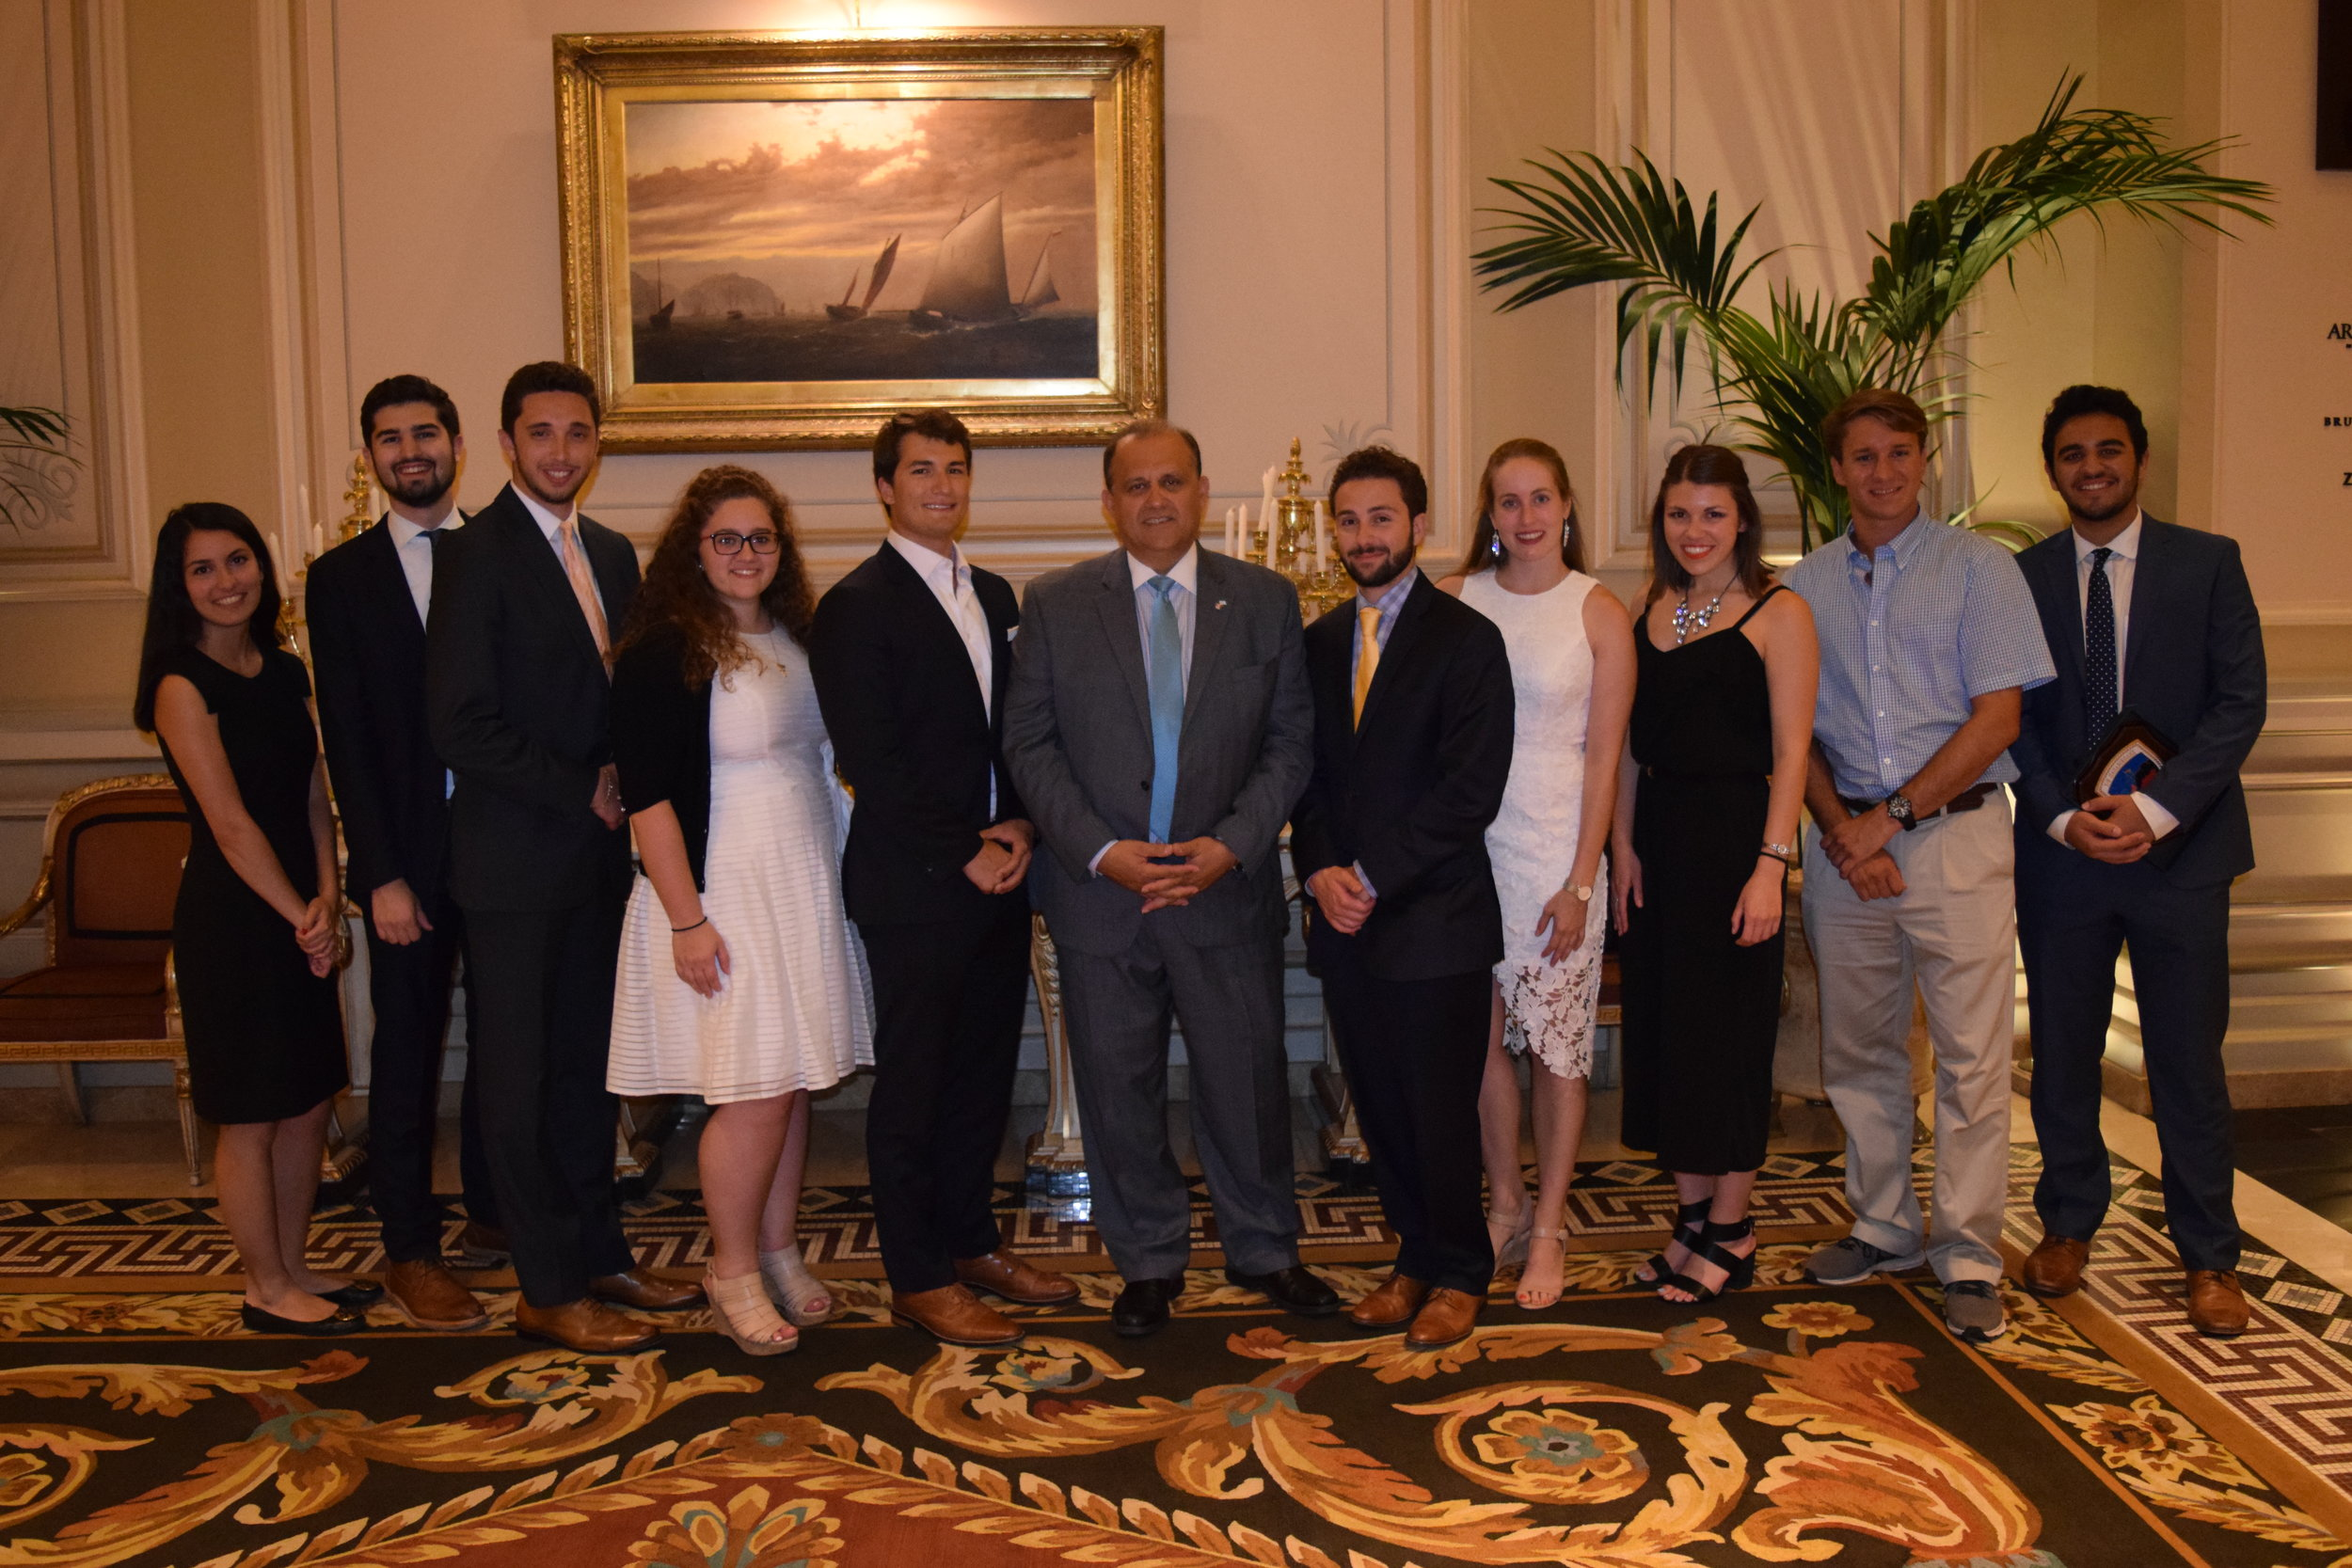 Nick Larigakis and students final photo at the Farewell Dinner.